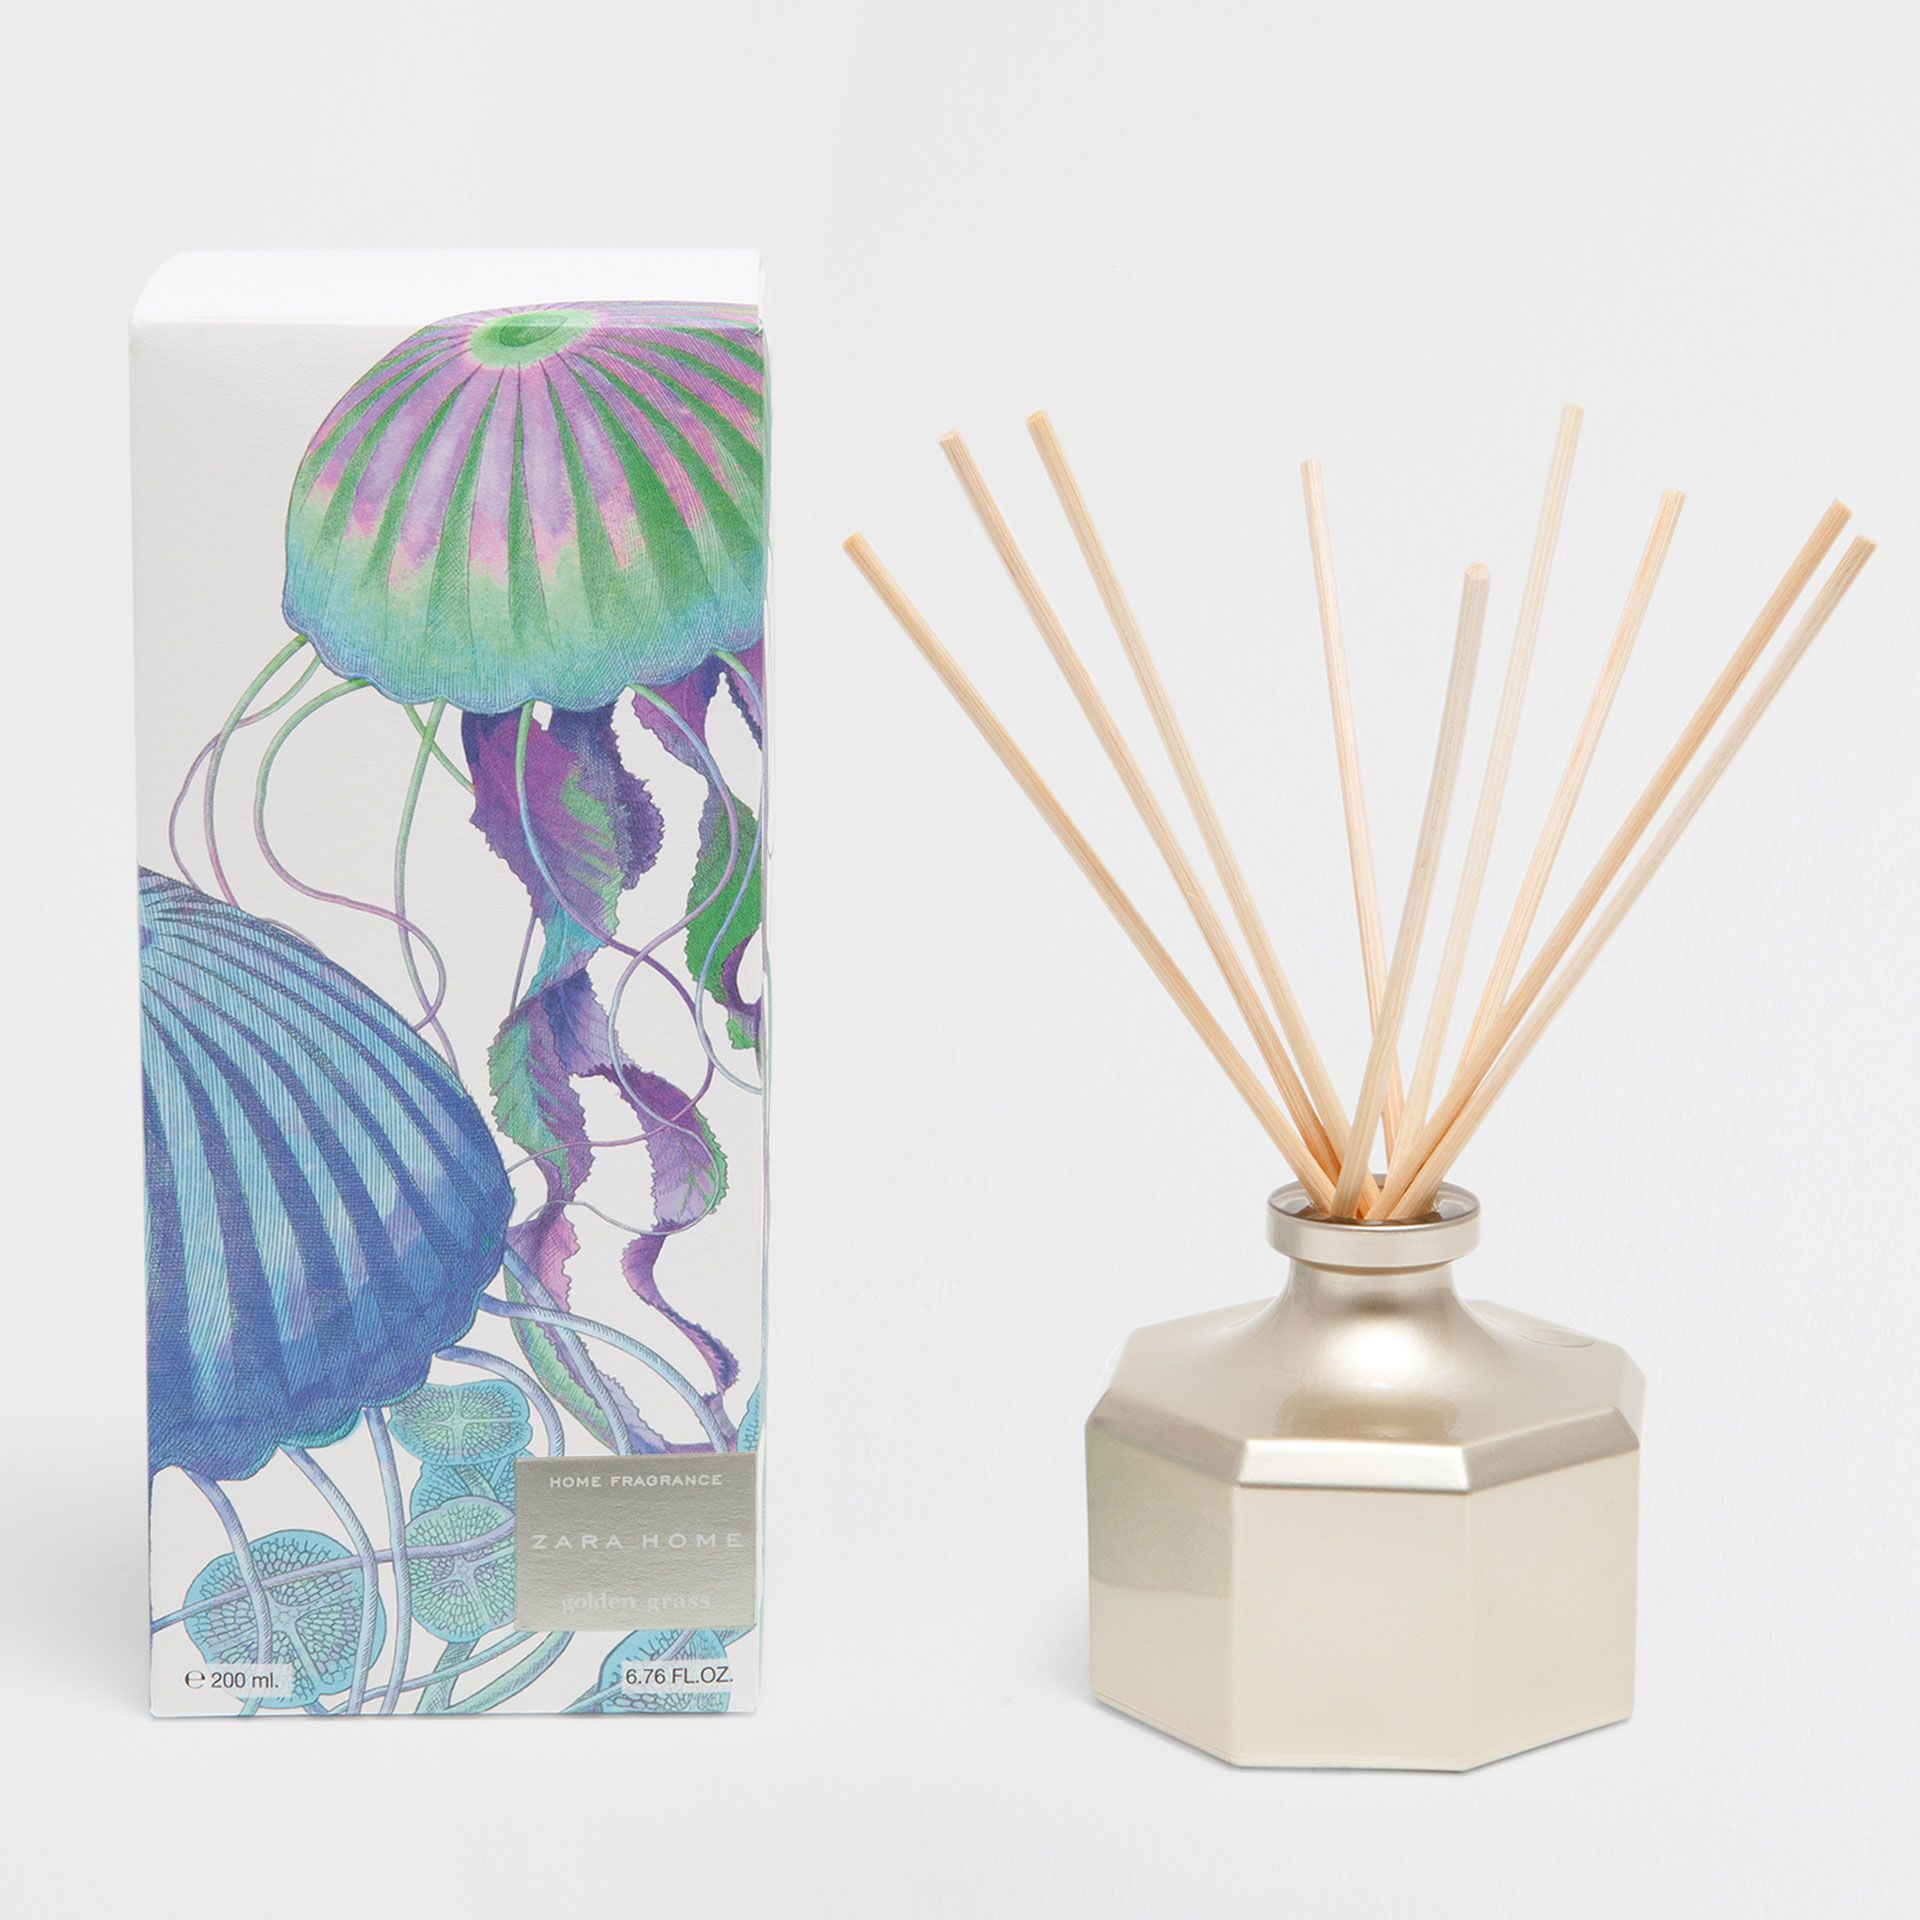 Image 1 Of The Product GOLDEN GRASS AIR FRESHENER STICKS (200 ML)